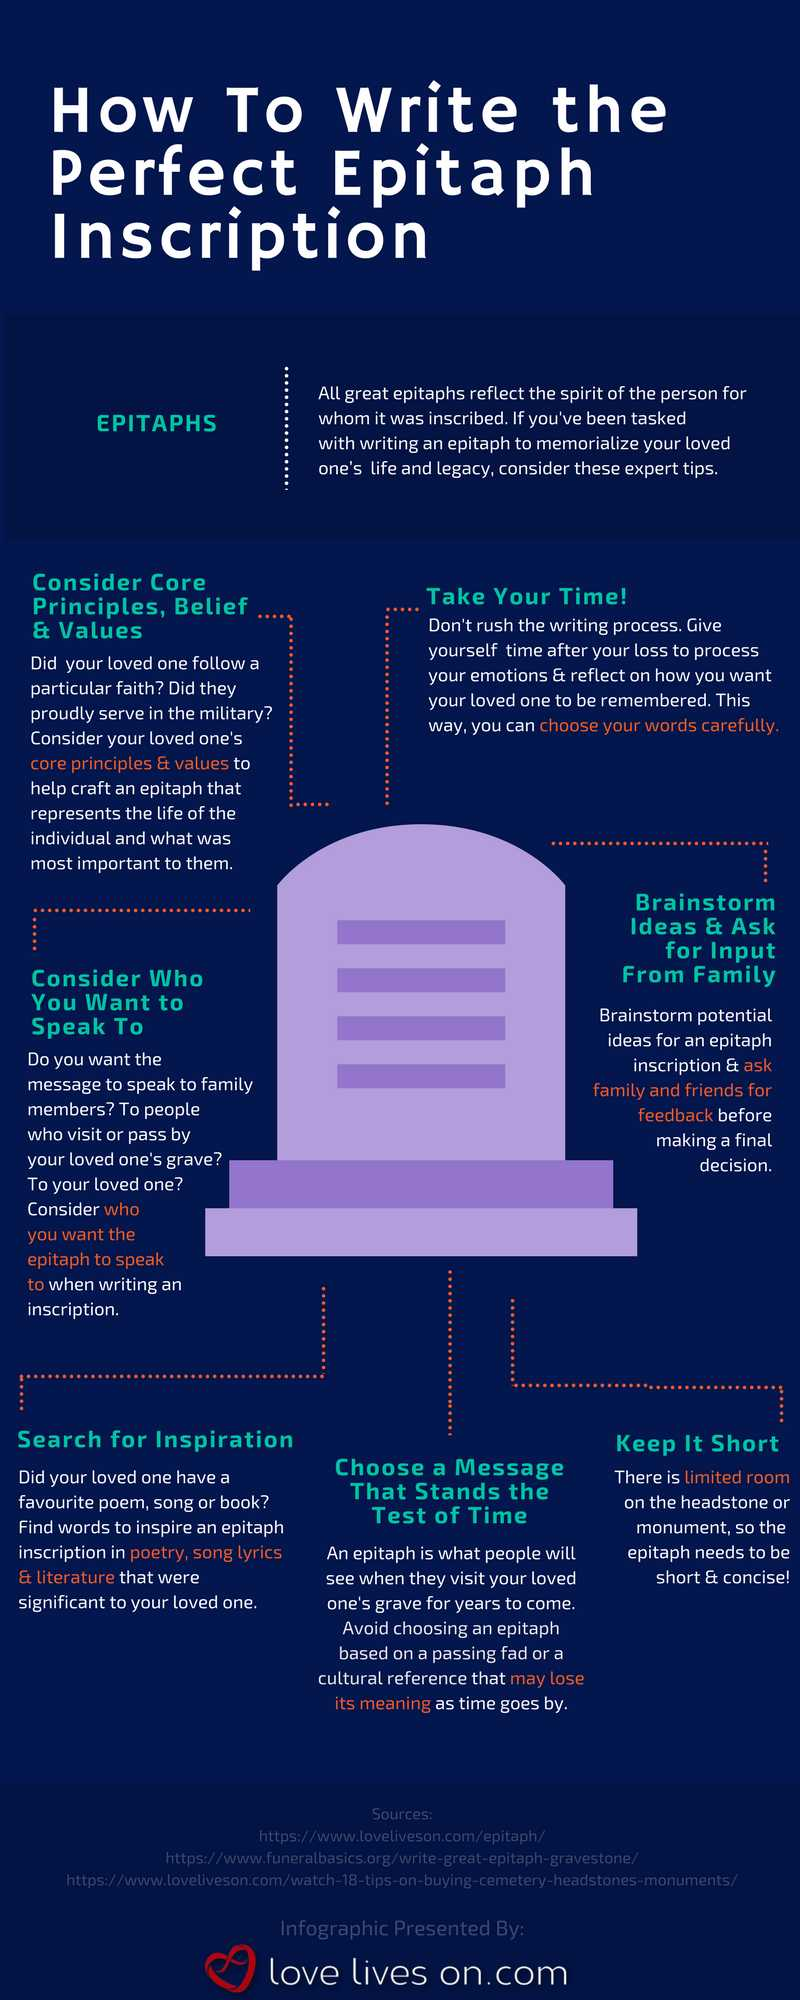 Tips for How to Write Epitaphs Infographic